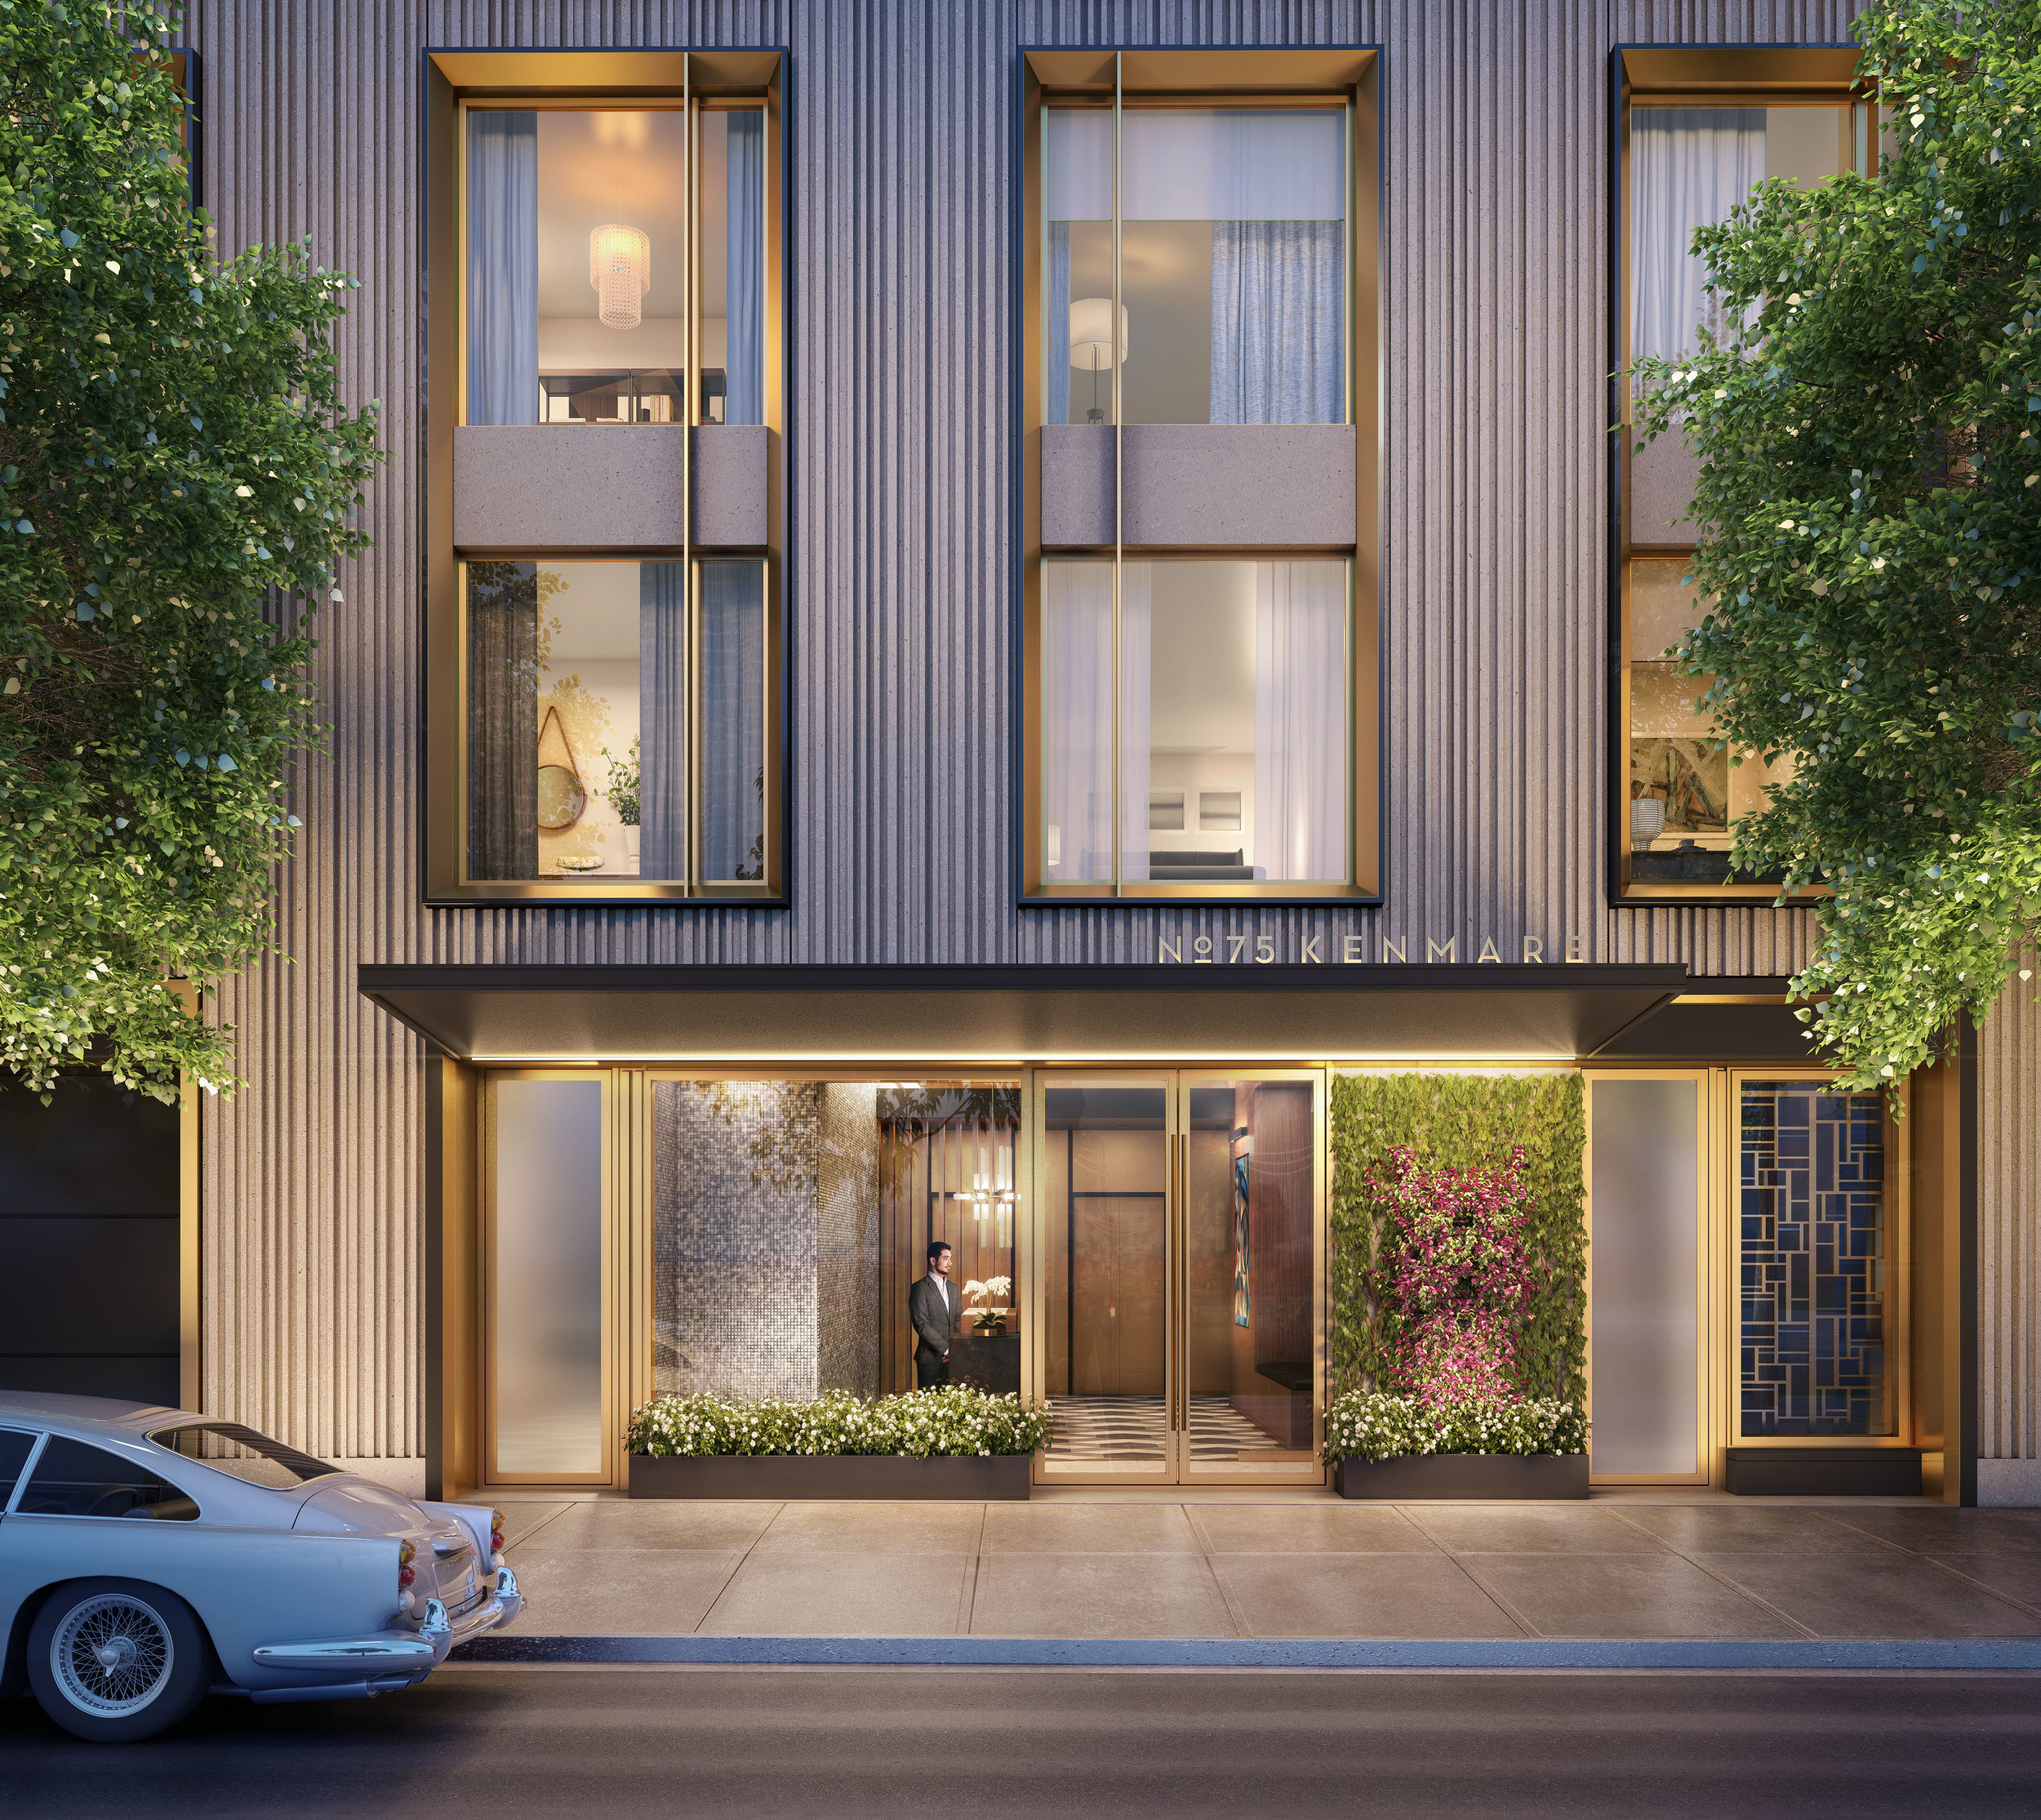 Rendering of luxury residential building at 75 Kenmare Nolita with MEP engineering services provided by 2L Engineering